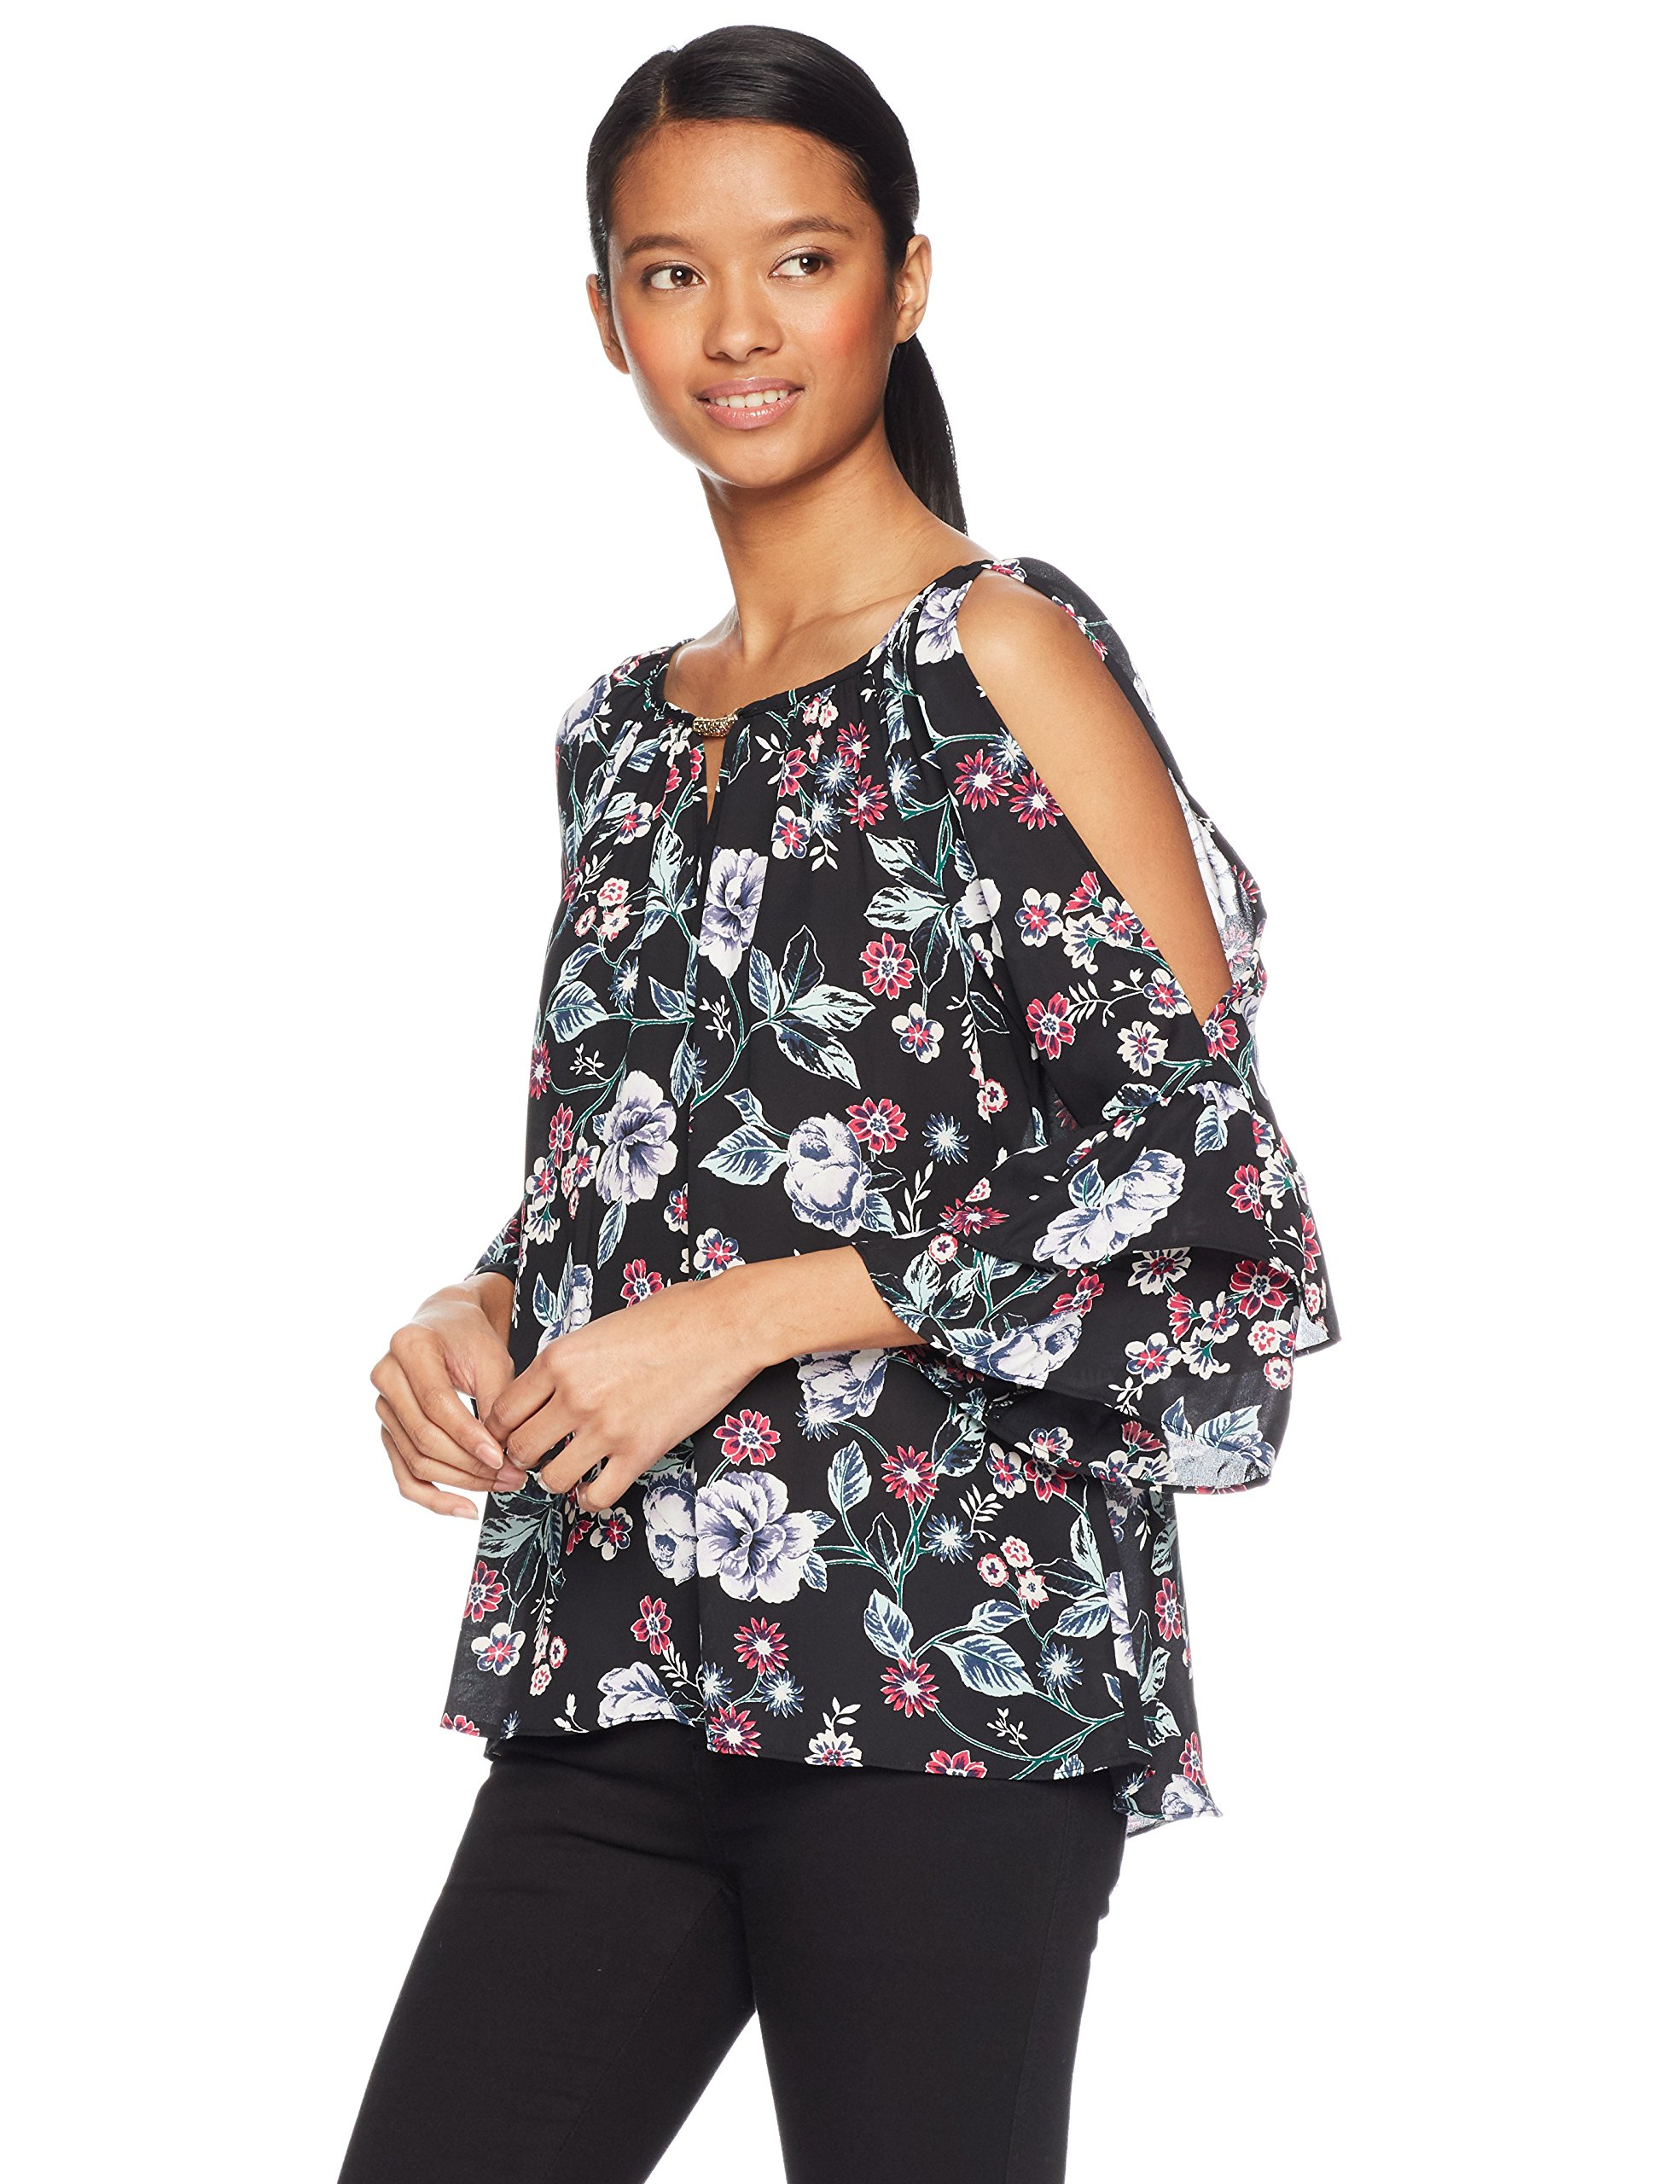 A. Byer 3/4 Tiered Sleeve Keyhole Top (Junior's), Lilac Floral, M by A. Byer